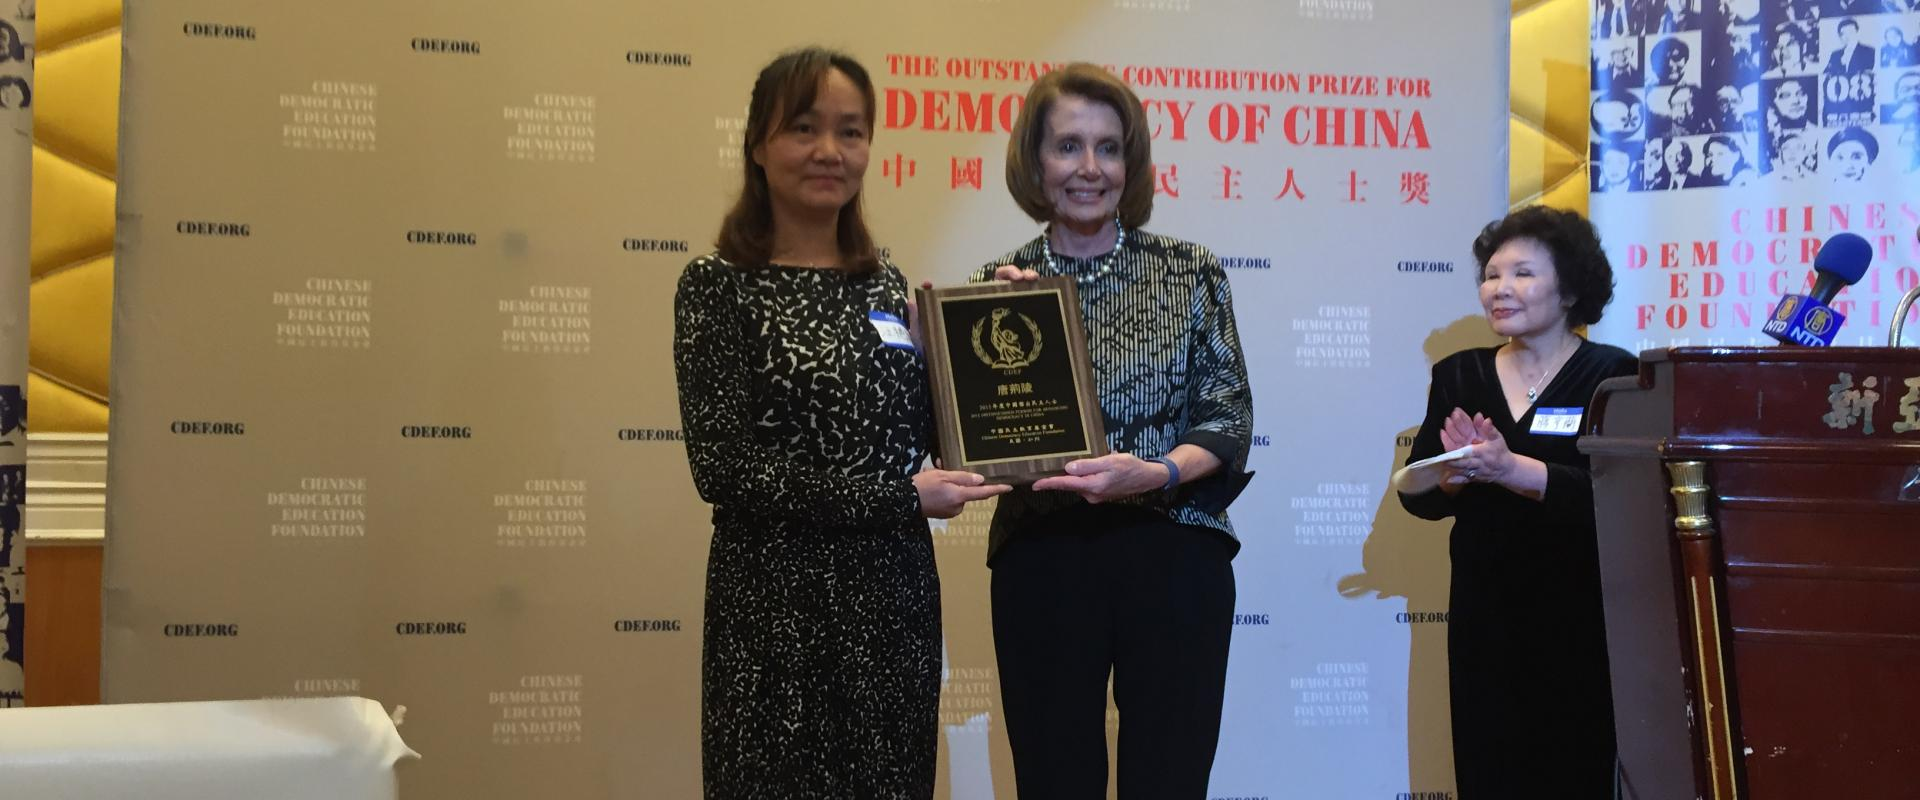 On Human Rights Day, Congresswoman Pelosi presents an award to Mrs. Wang Yanfang, wife of Human Rights Lawyer Tang Jingling, the recipient of the 2016 Outstanding Contribution Prize for Democracy in China Award.